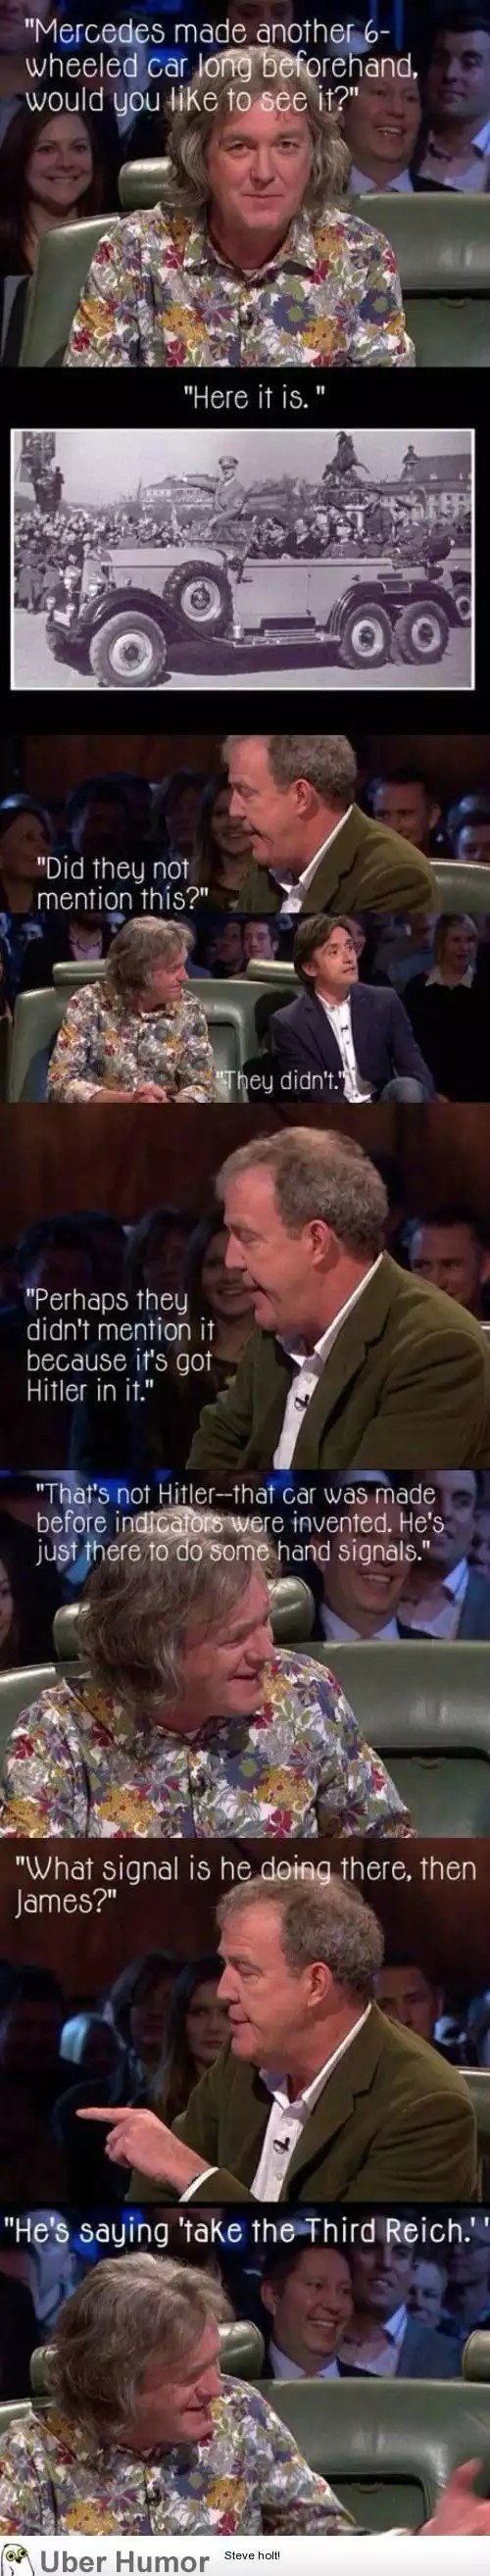 """The Third Reich. . Mercedes made enerder -. wheeled my ) raha' oct would we like Tehee it'?"""" Did meg her Tr"""" mention this?"""" In Perhaps meg . didn' t mention it"""